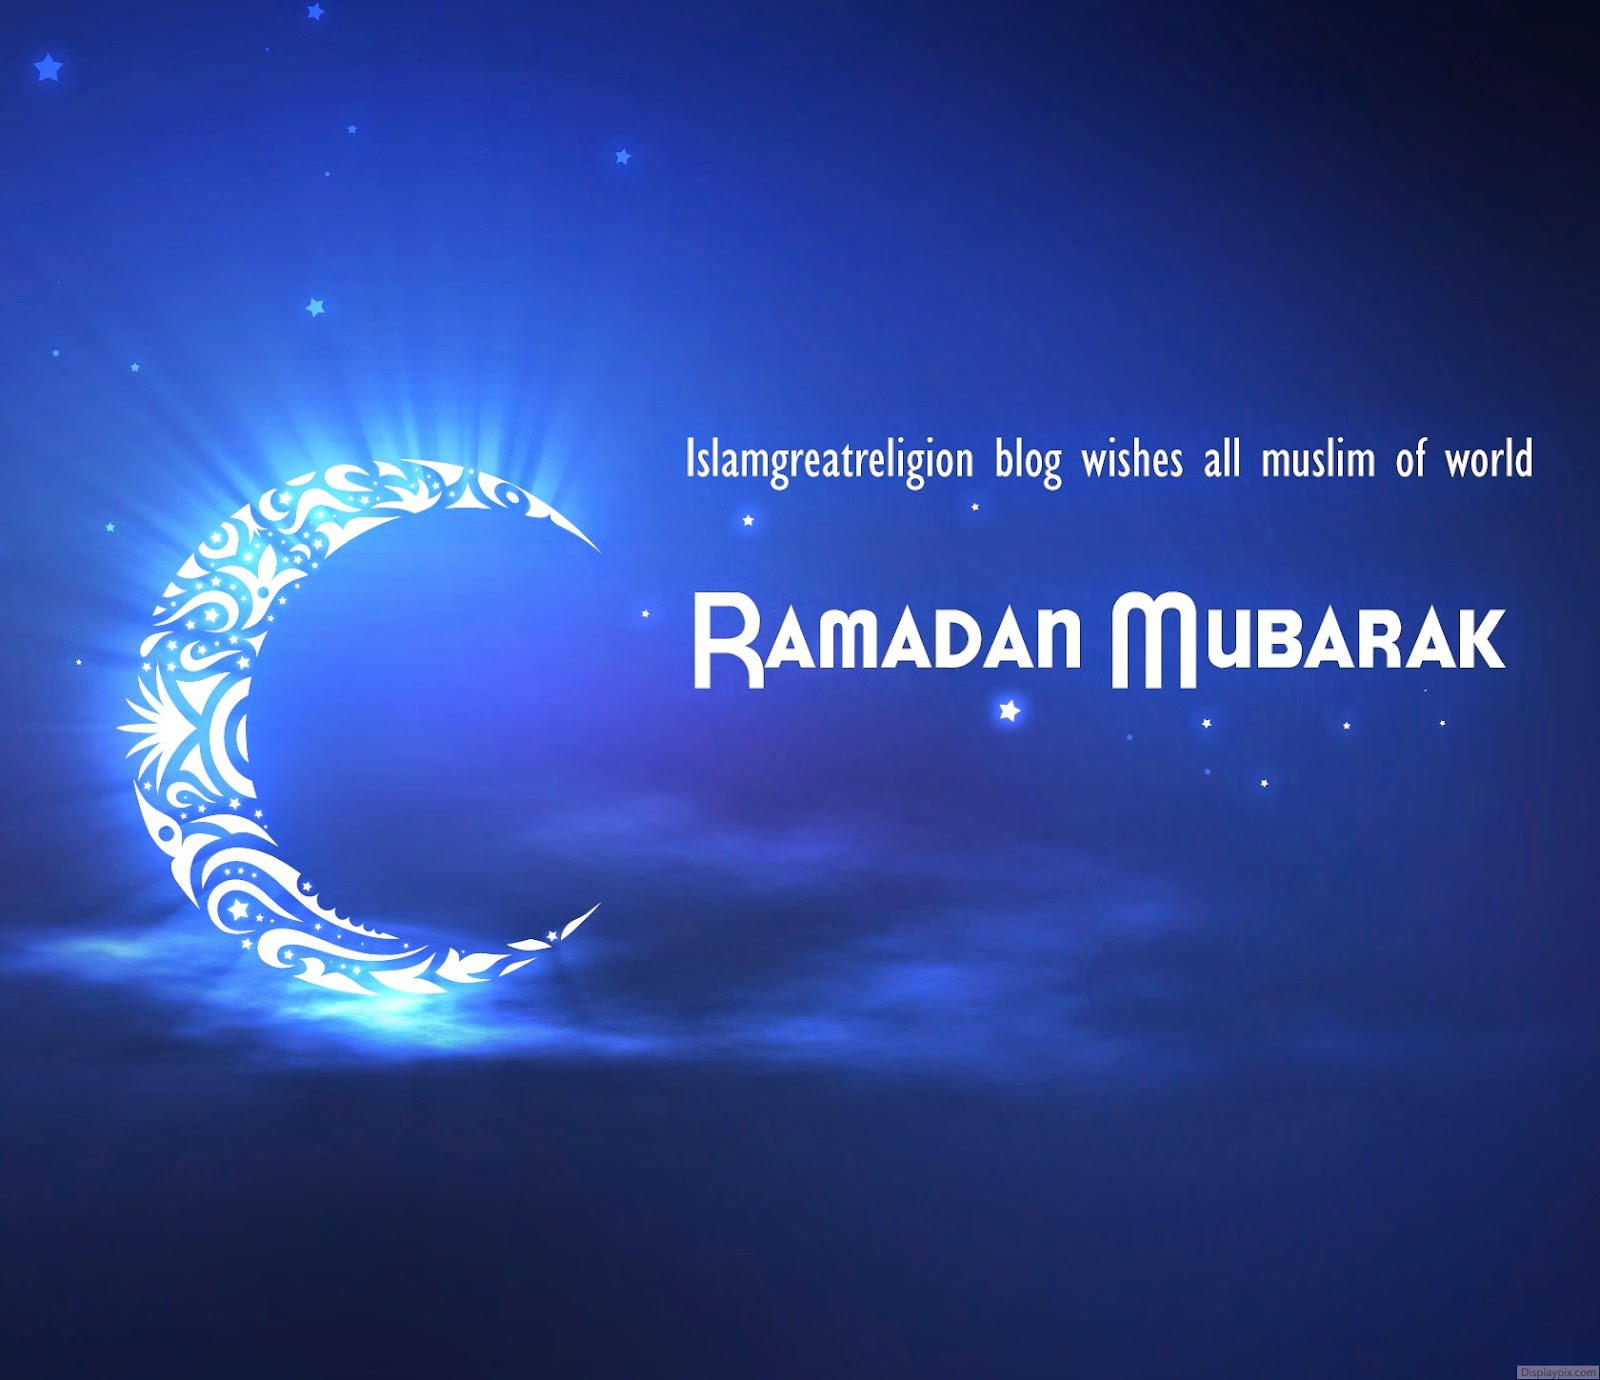 http://www.picturesnew.com/media/images/ramadan-2014-wallpaper-image.jpg